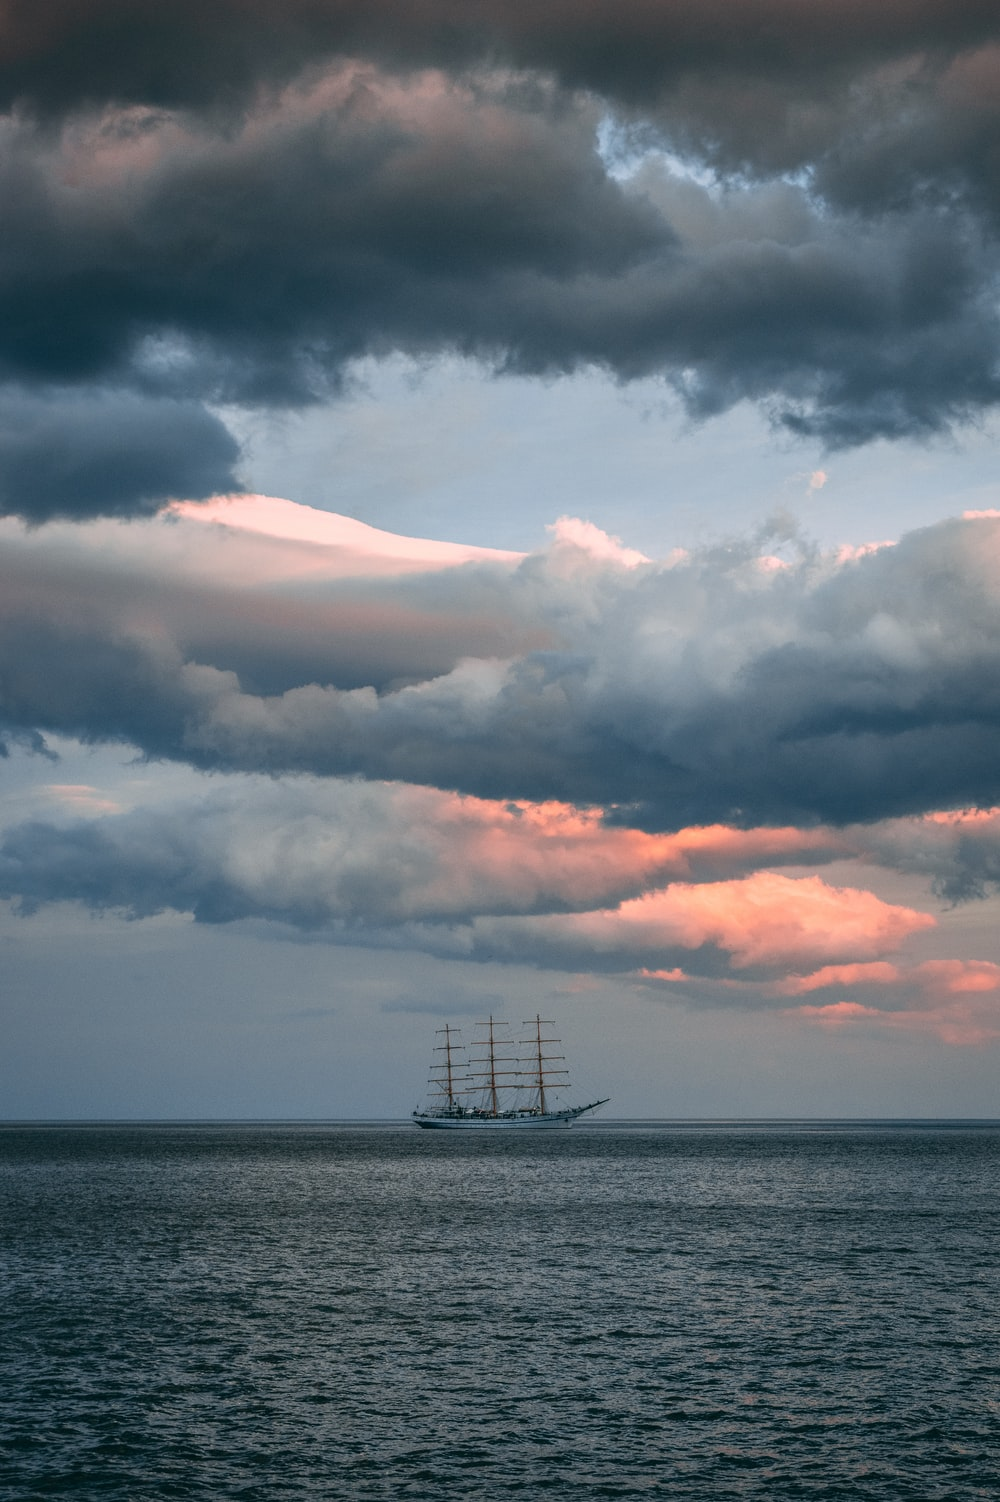 white and brown ship in ocean water under cloudy sky during daytime